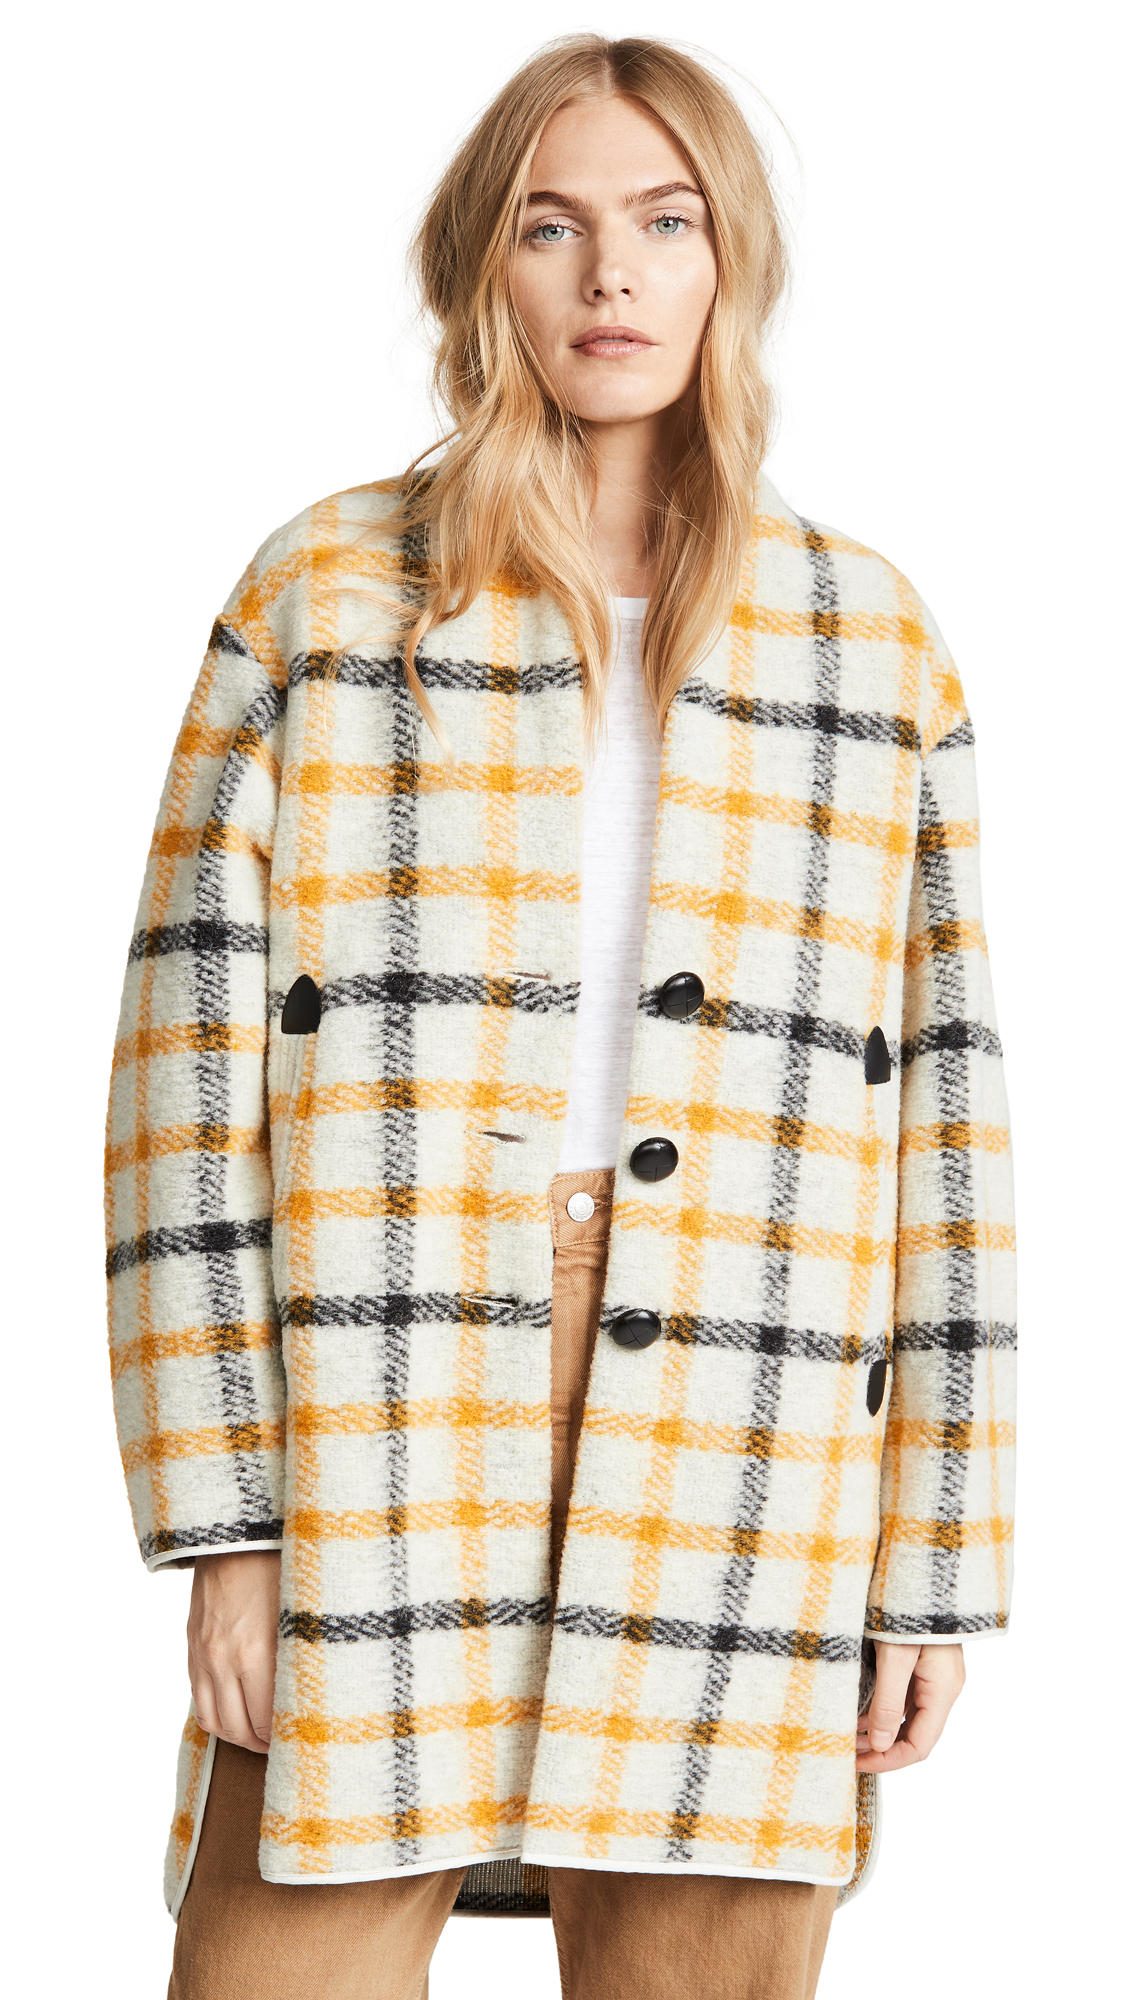 Isabel Marant Etoile Gabrie Coat In Ecru/Yellow